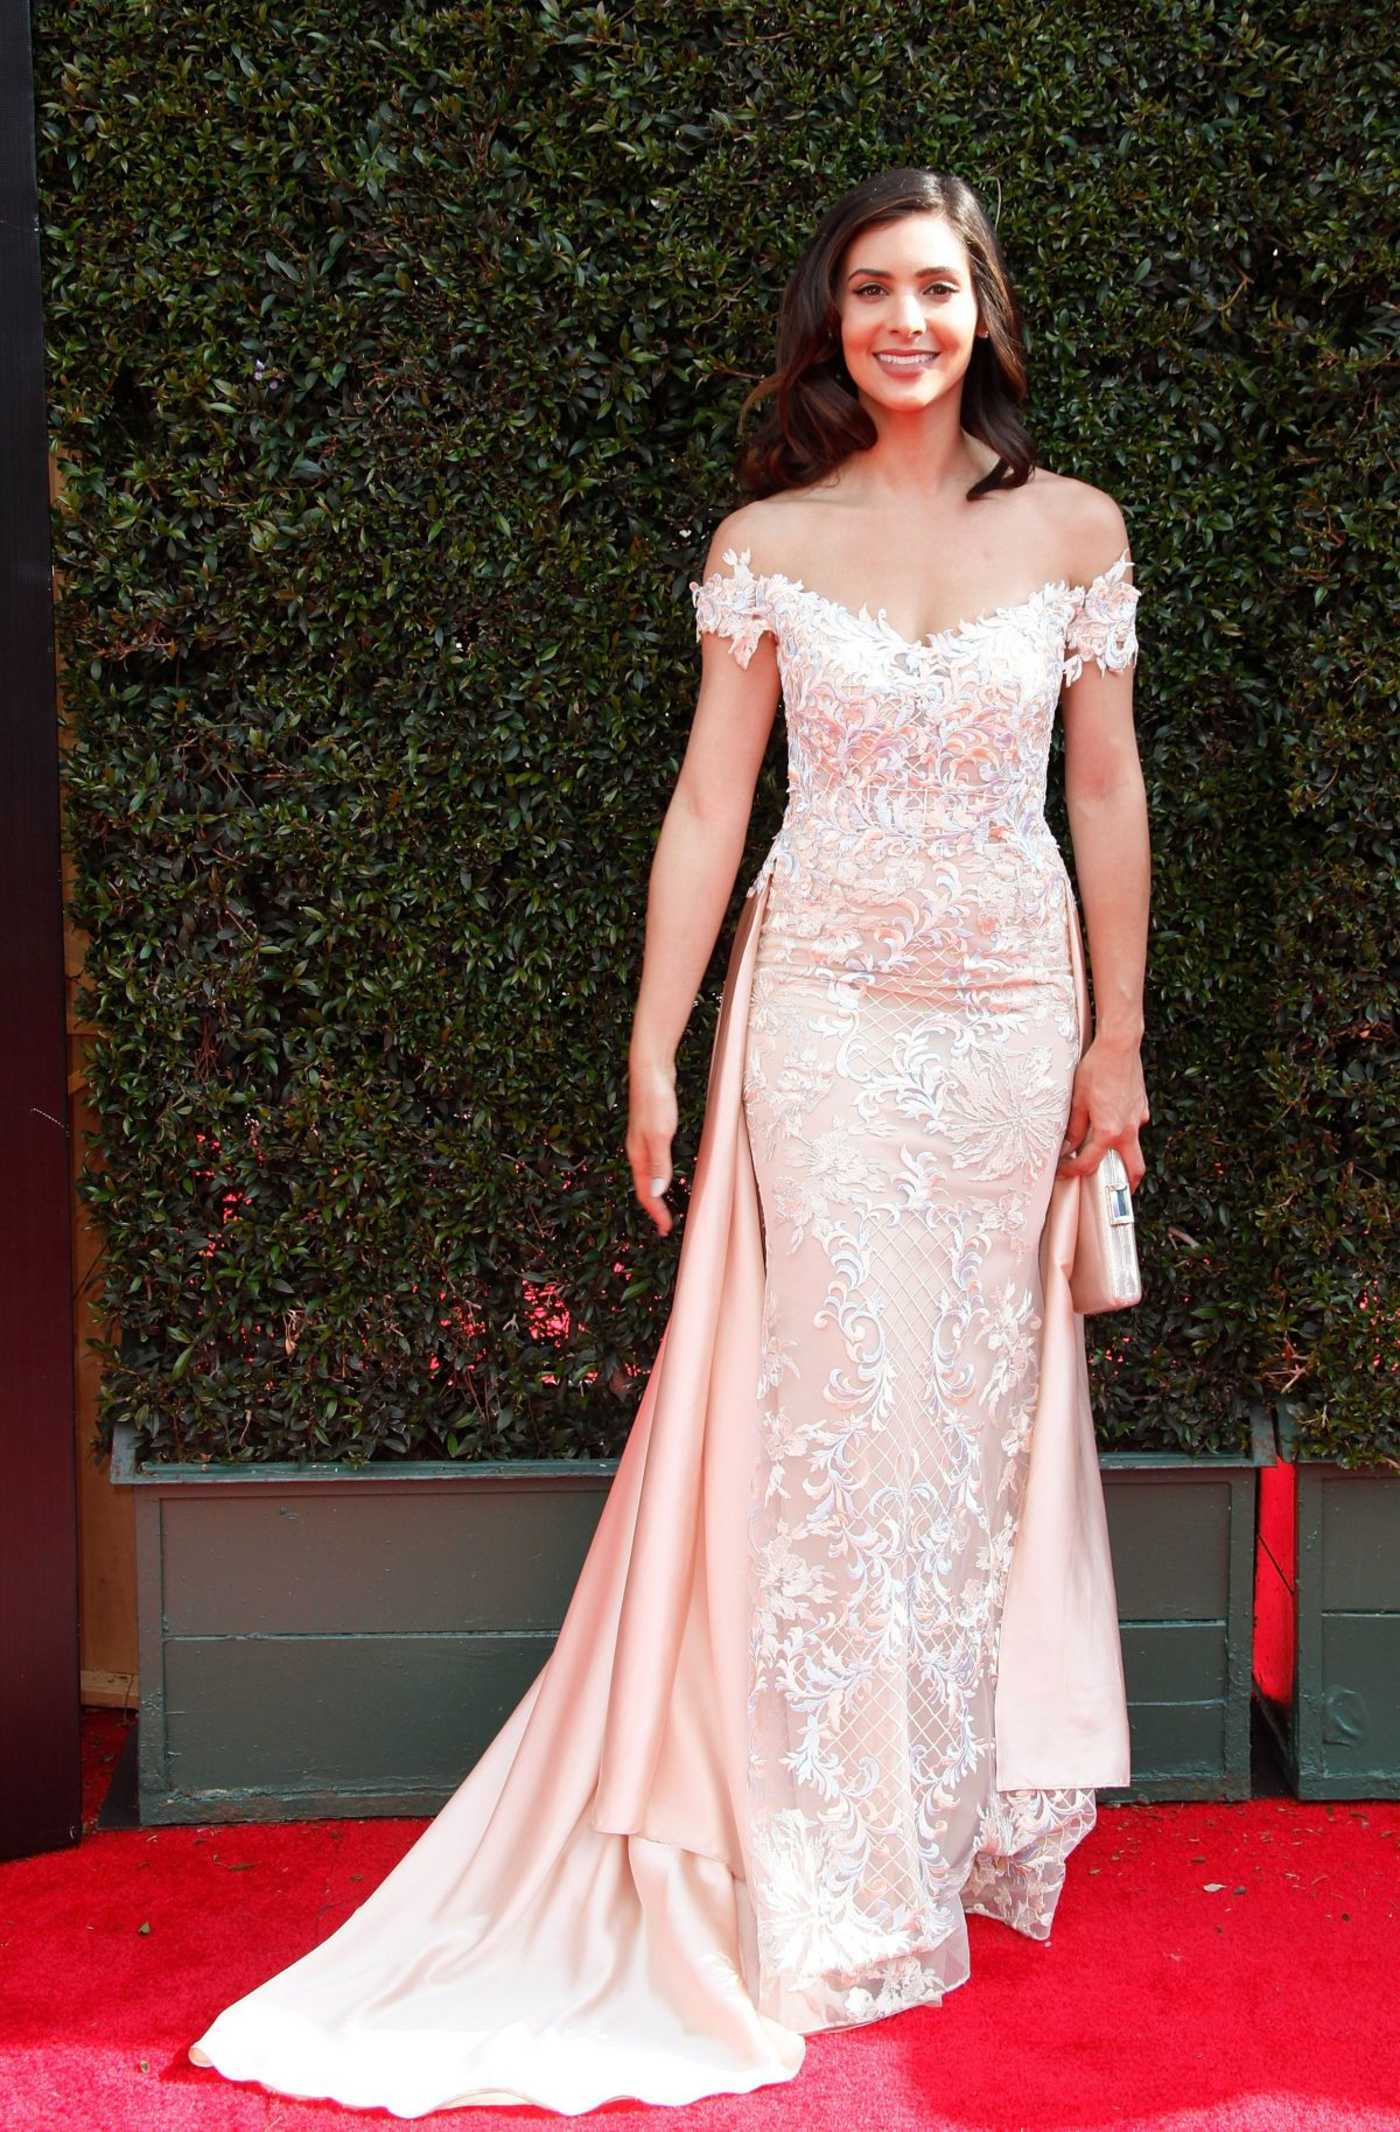 Camila Banus at the 45th Annual Daytime Emmy Awards in Los Angeles 04/29/2018